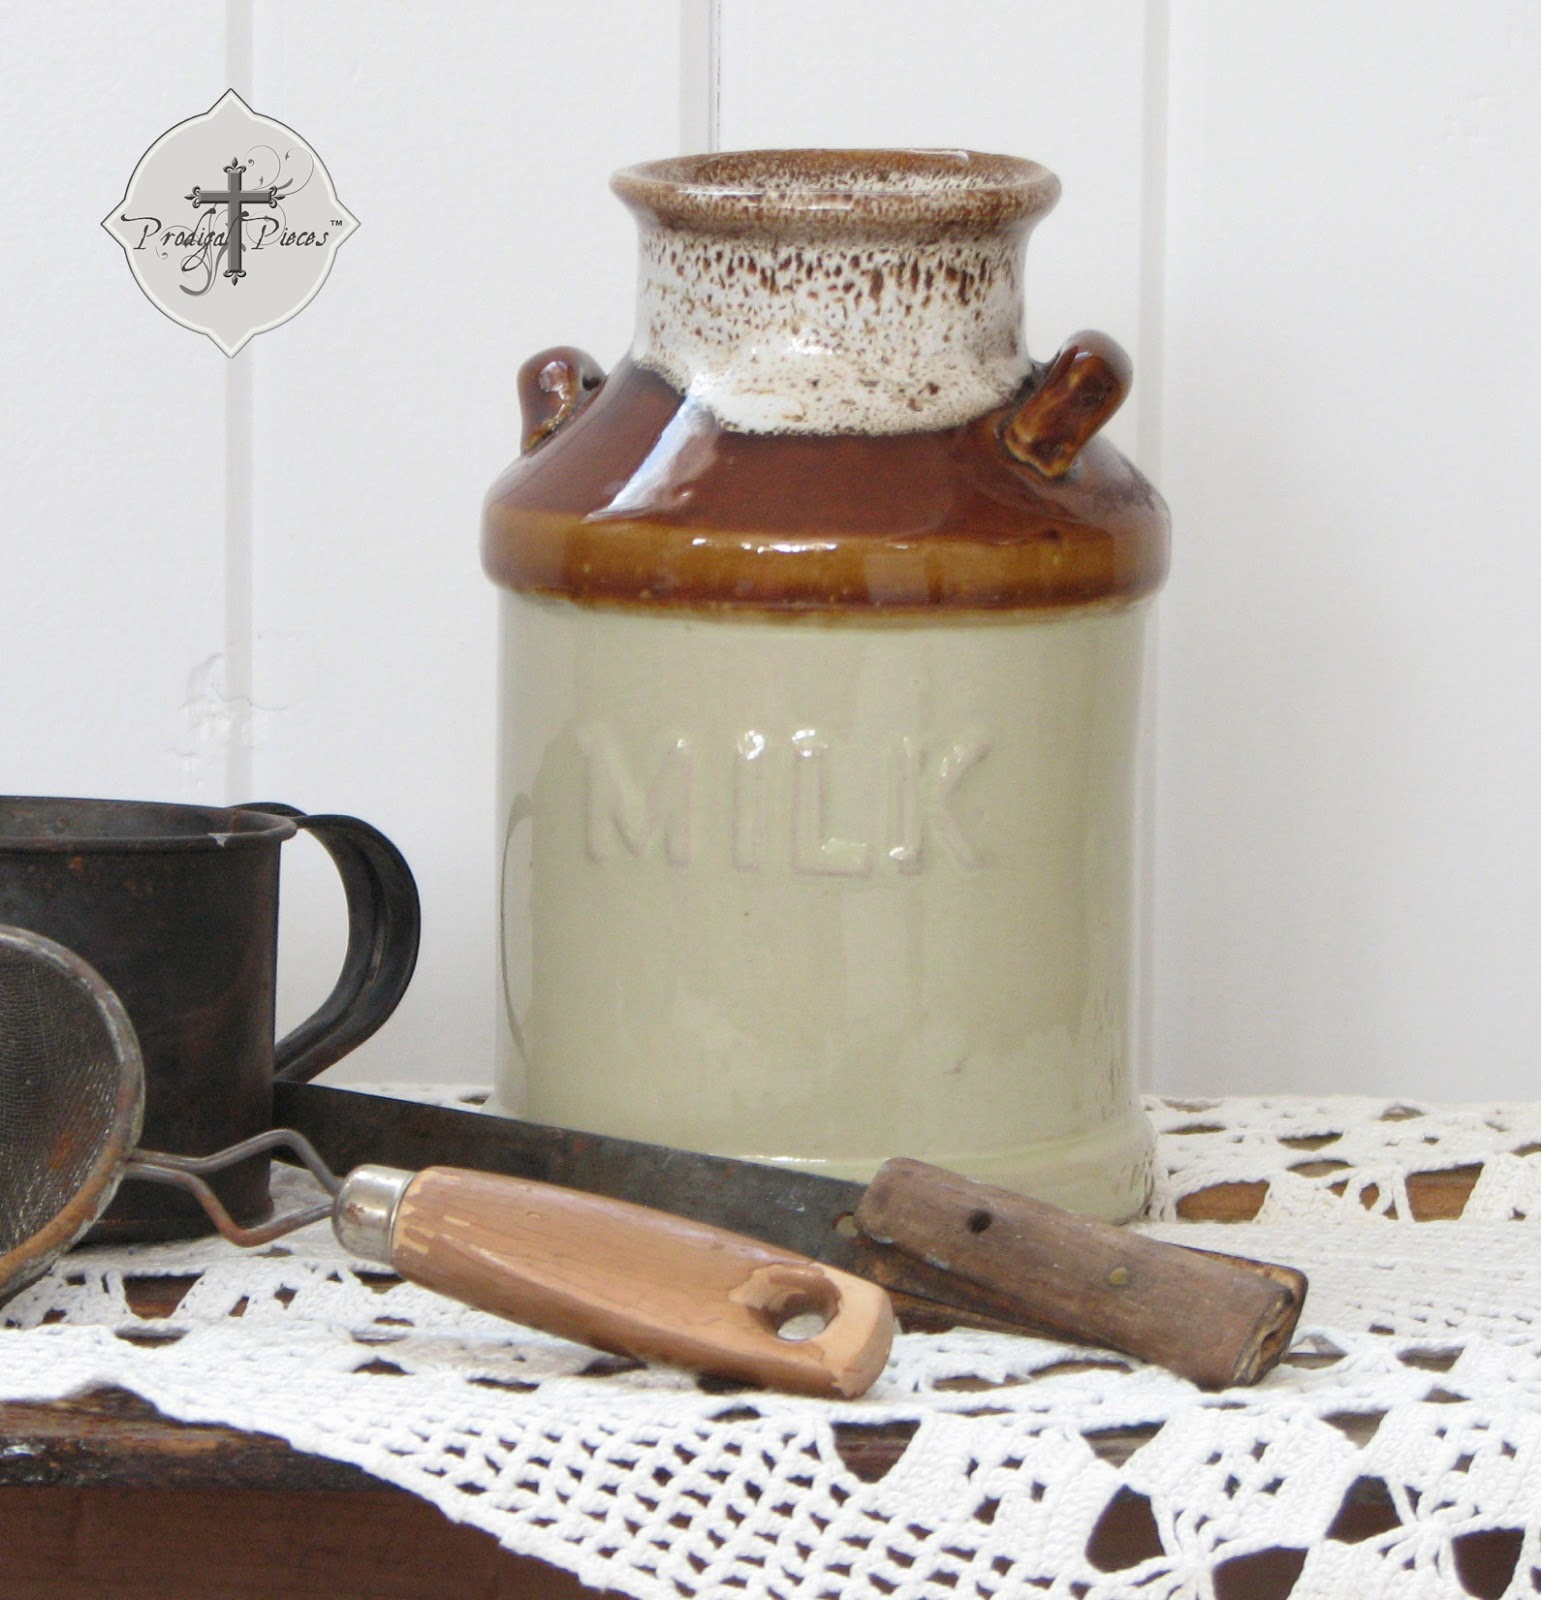 Hand-crafted Milk Can Crock via Prodigal Pieces